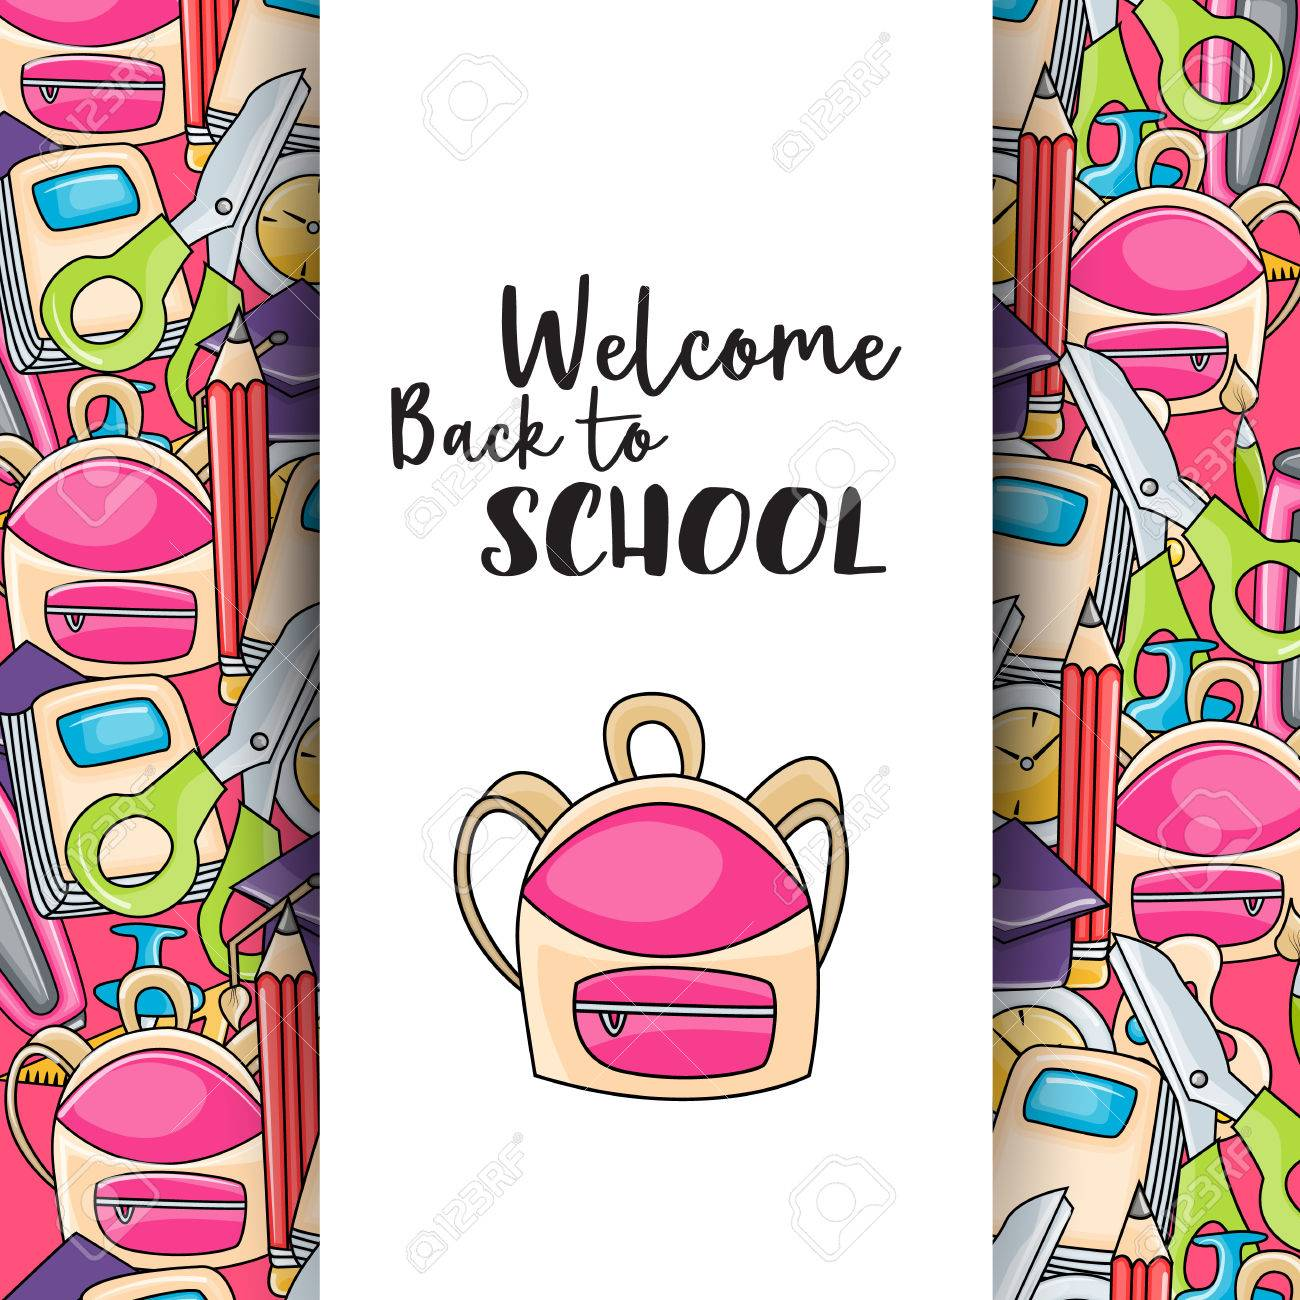 Welcome back to school doodle clip art greeting card cartoon vector welcome back to school doodle clip art greeting card cartoon vector illustration for flyer to banner typography script text m4hsunfo